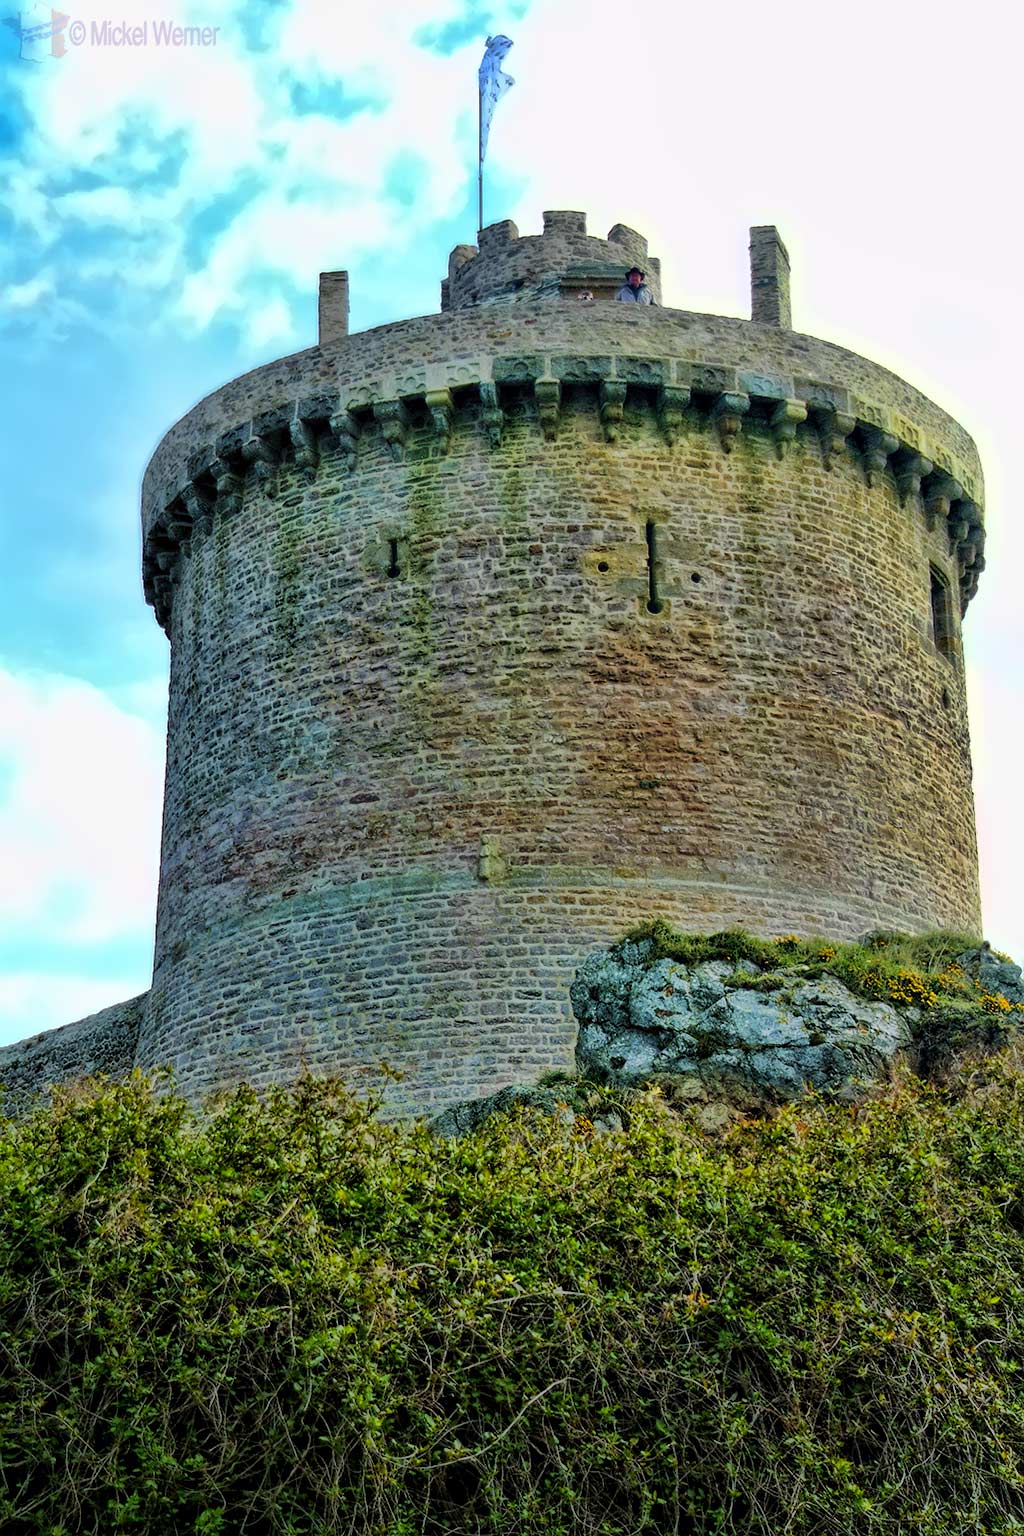 Dungeon Tower/Turret of Fort-la-Latte fortress in Plevenon, Brittany